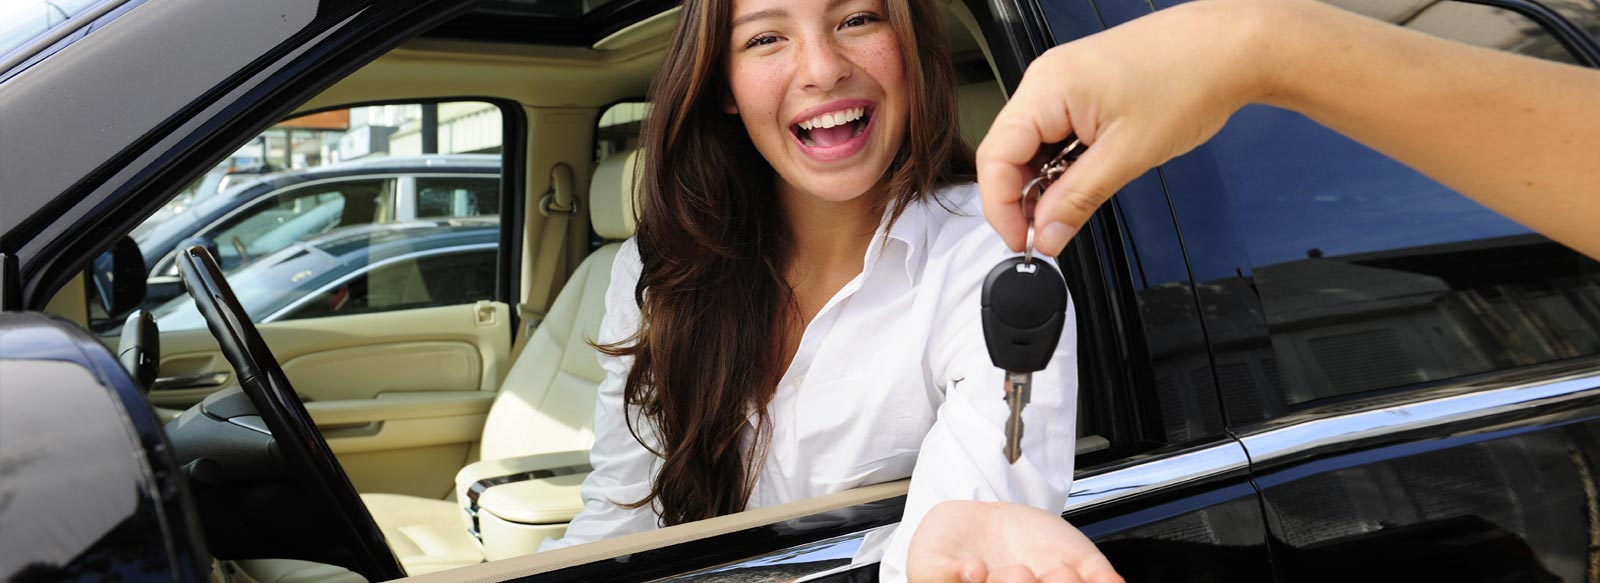 Car Repairs Services in Sydney